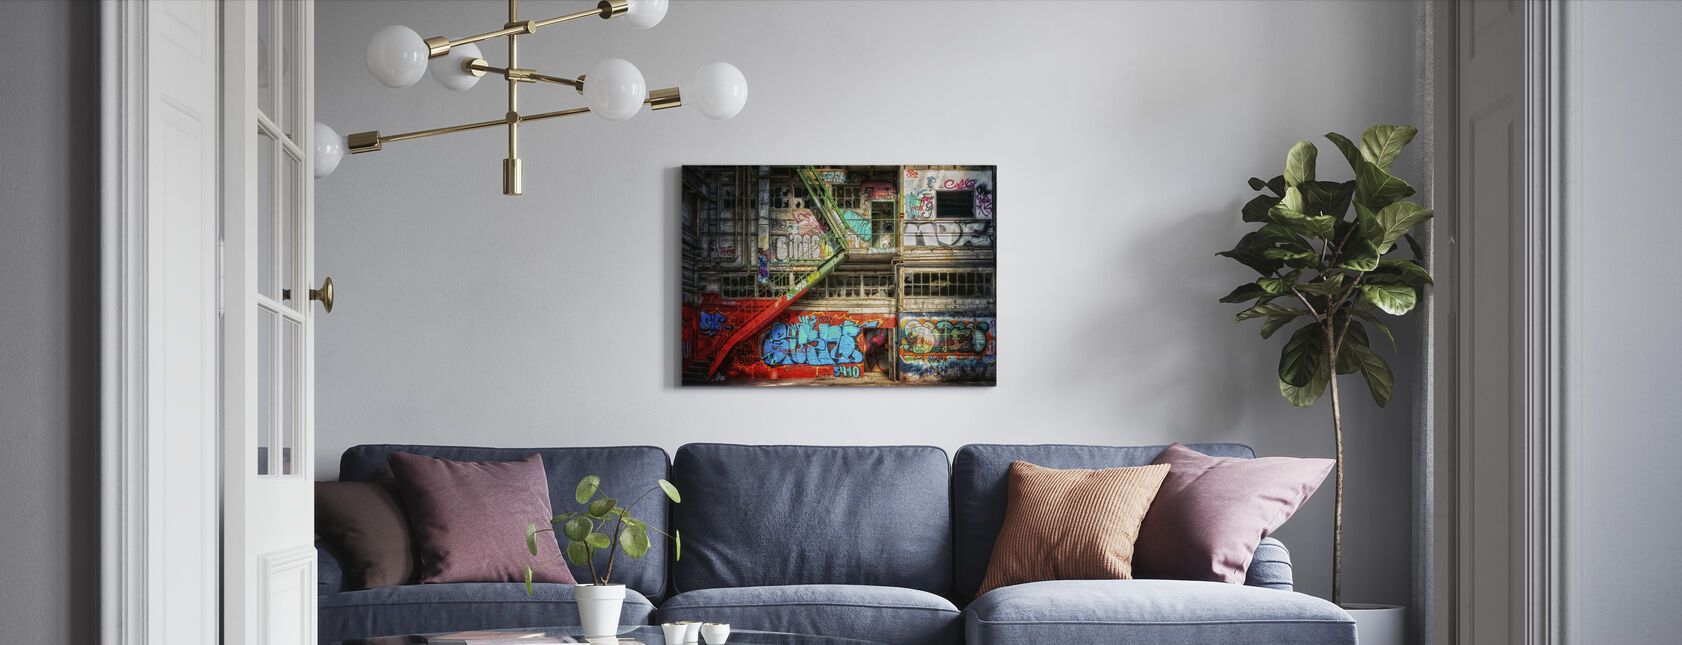 Abandoned Building - Canvas print - Living Room